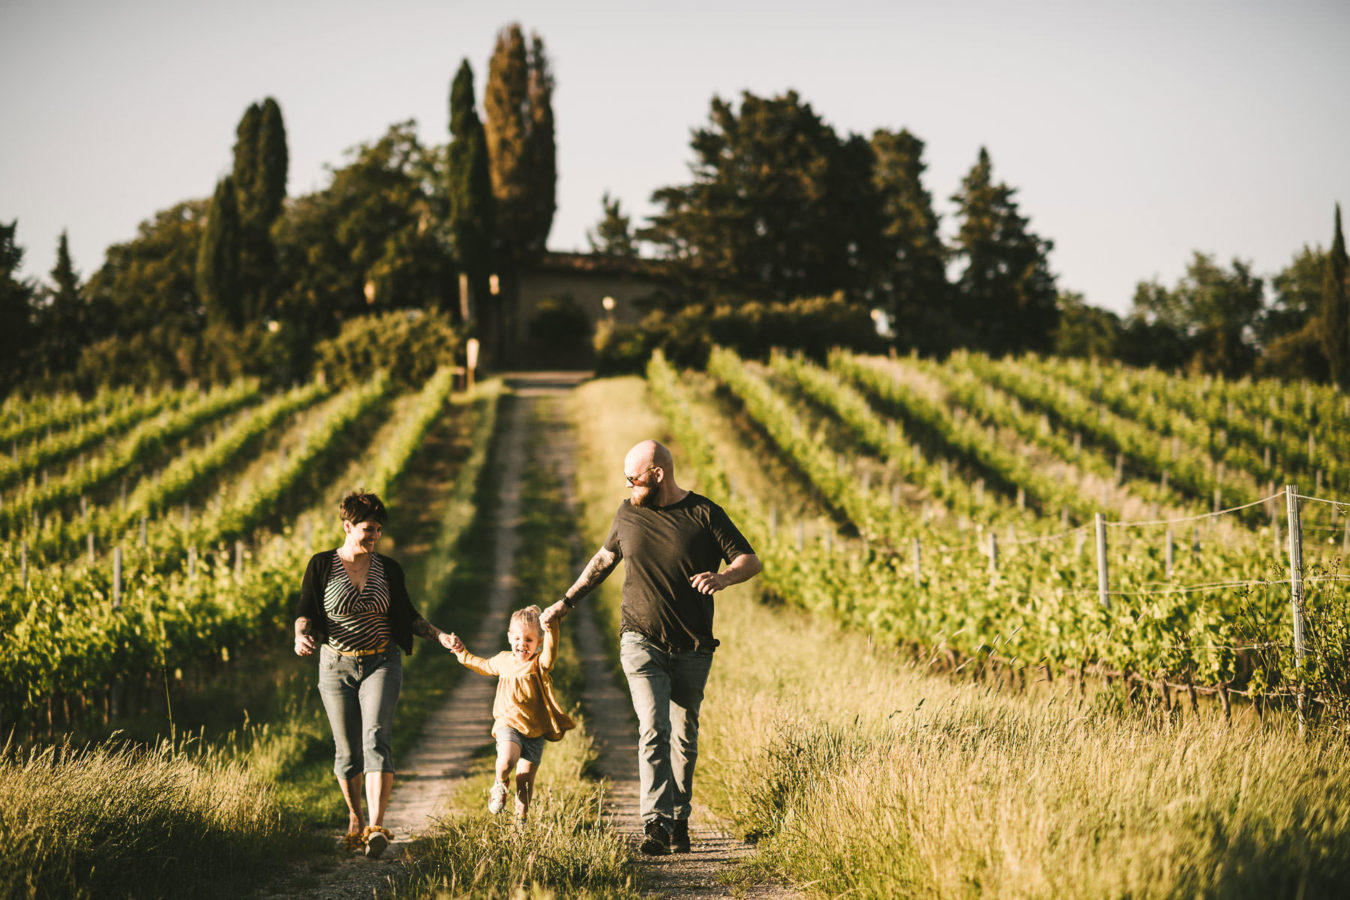 Family holiday photos in Tuscany, genuine happiness for everyone